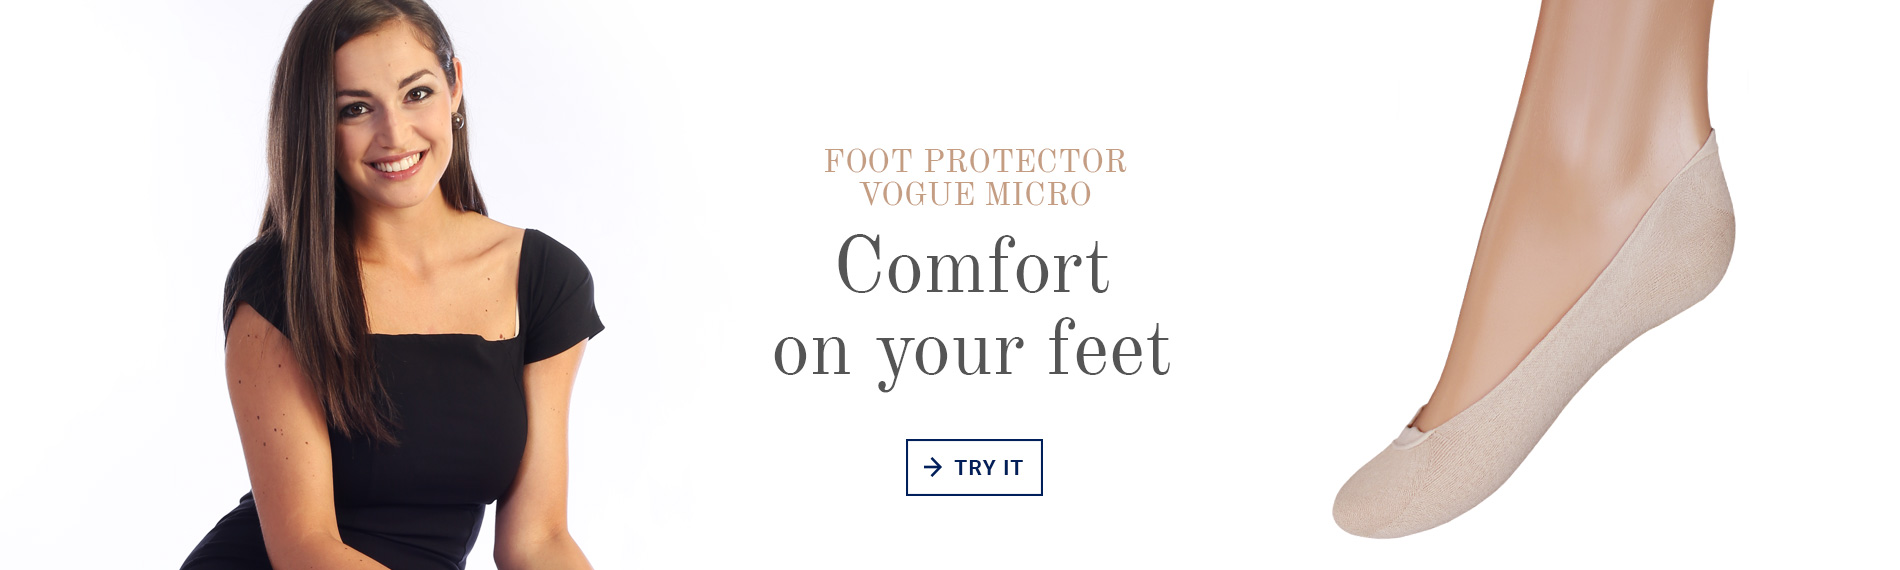 Foot protector Vogue Micro, comfort on your feet